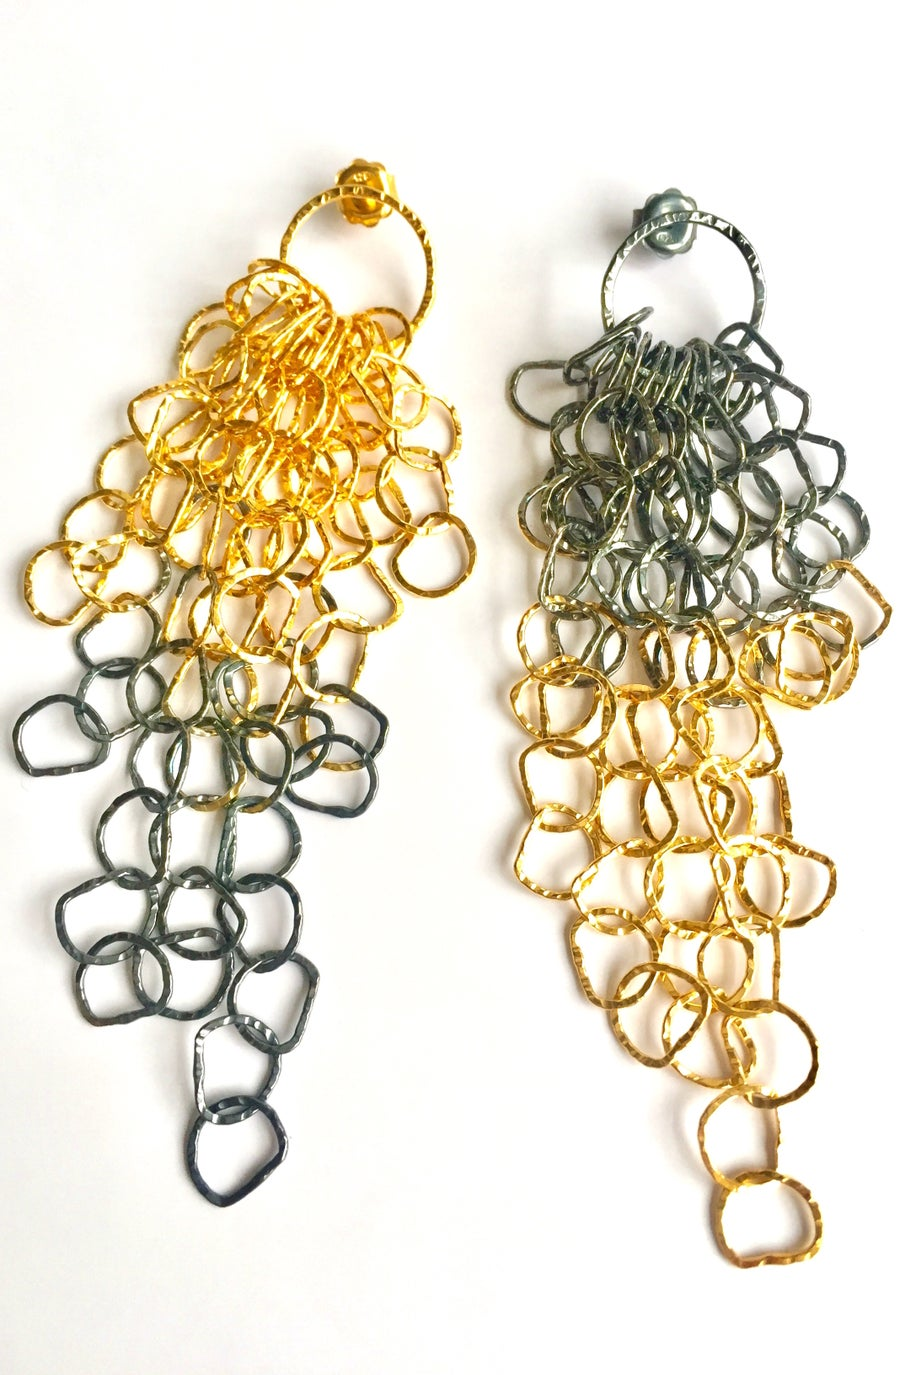 Image of Afiok large cascade earrings- oxidised silver/gold vermeil